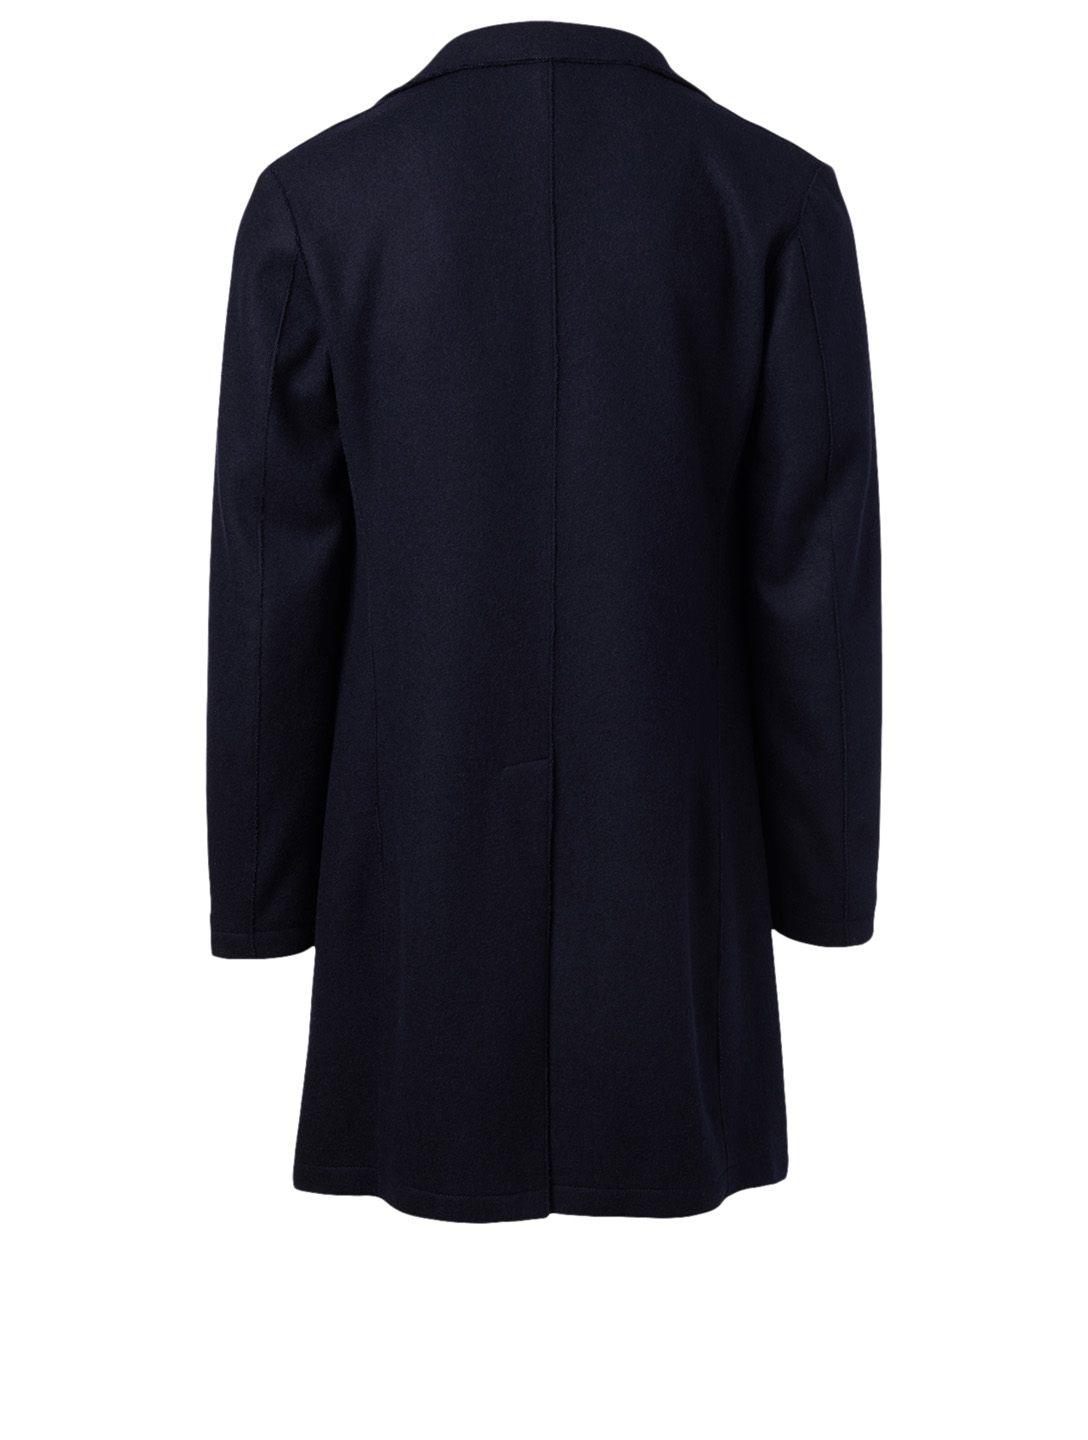 ELEVENTY Wool Coat Men's Blue